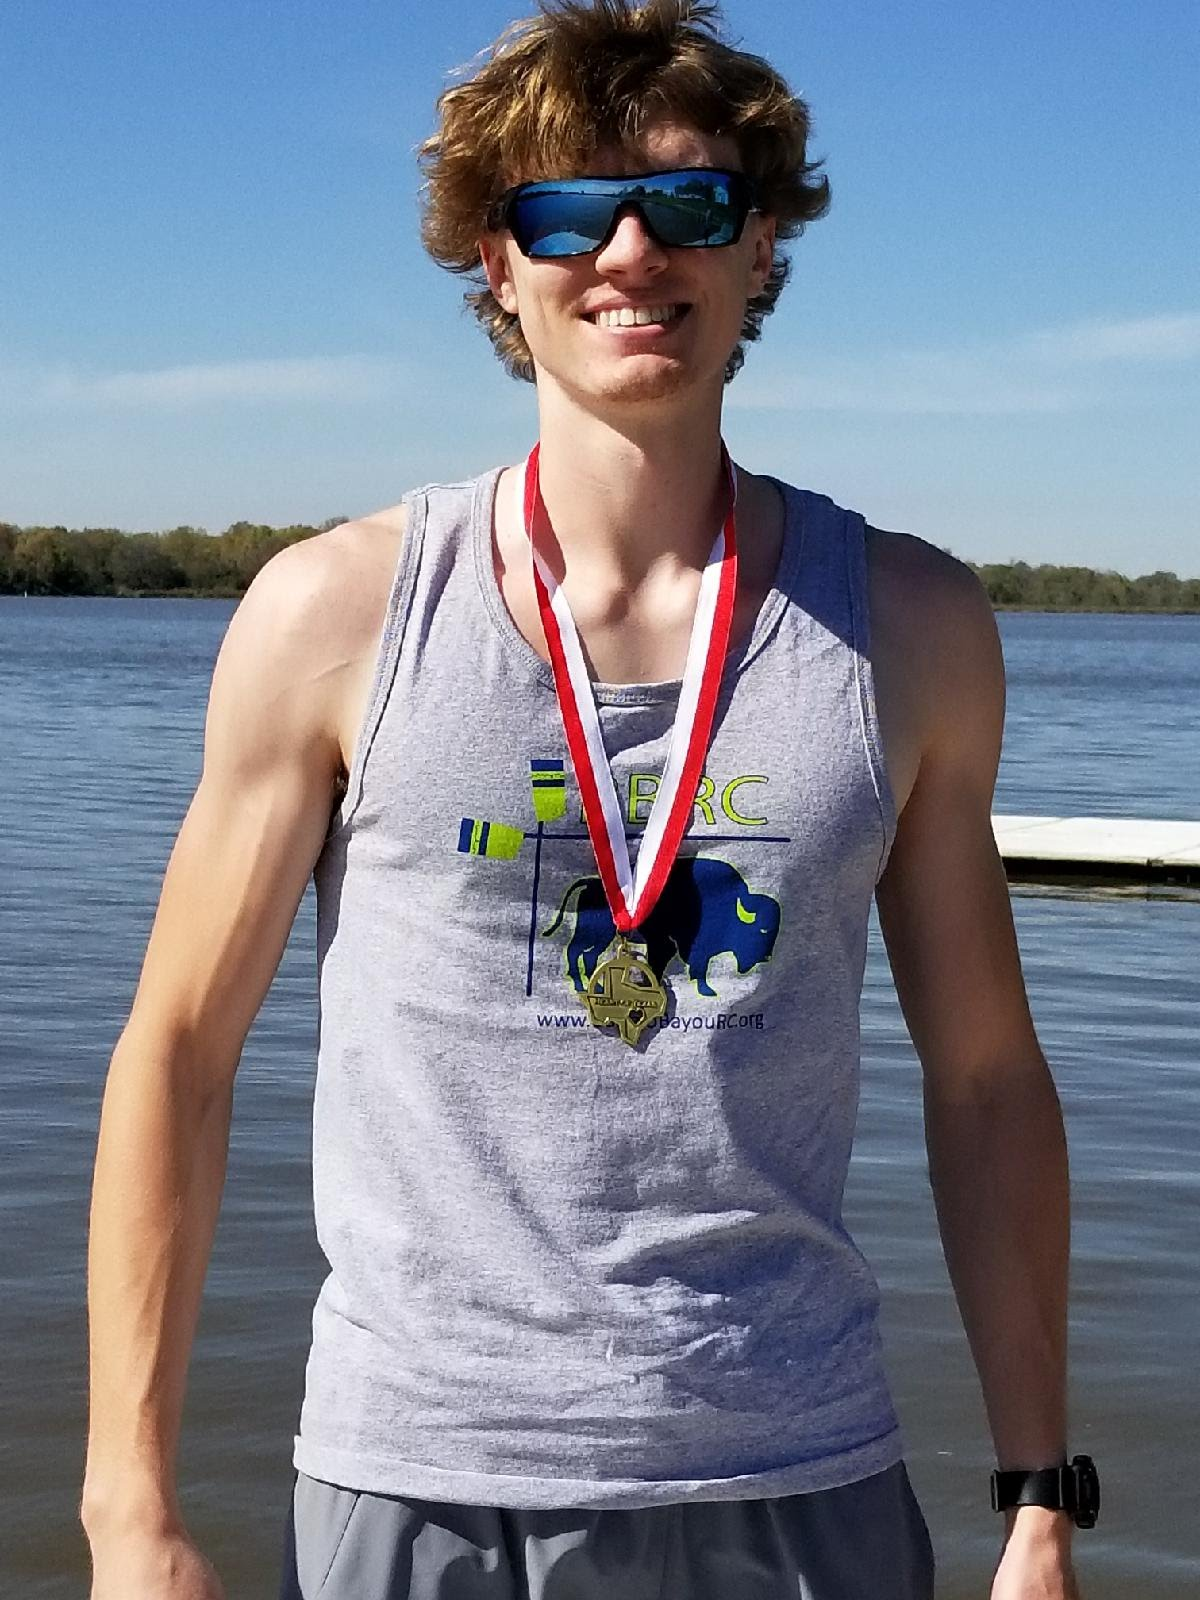 BBRC's first medal- 1st place. Heart of Texas 2018. W. Alexander